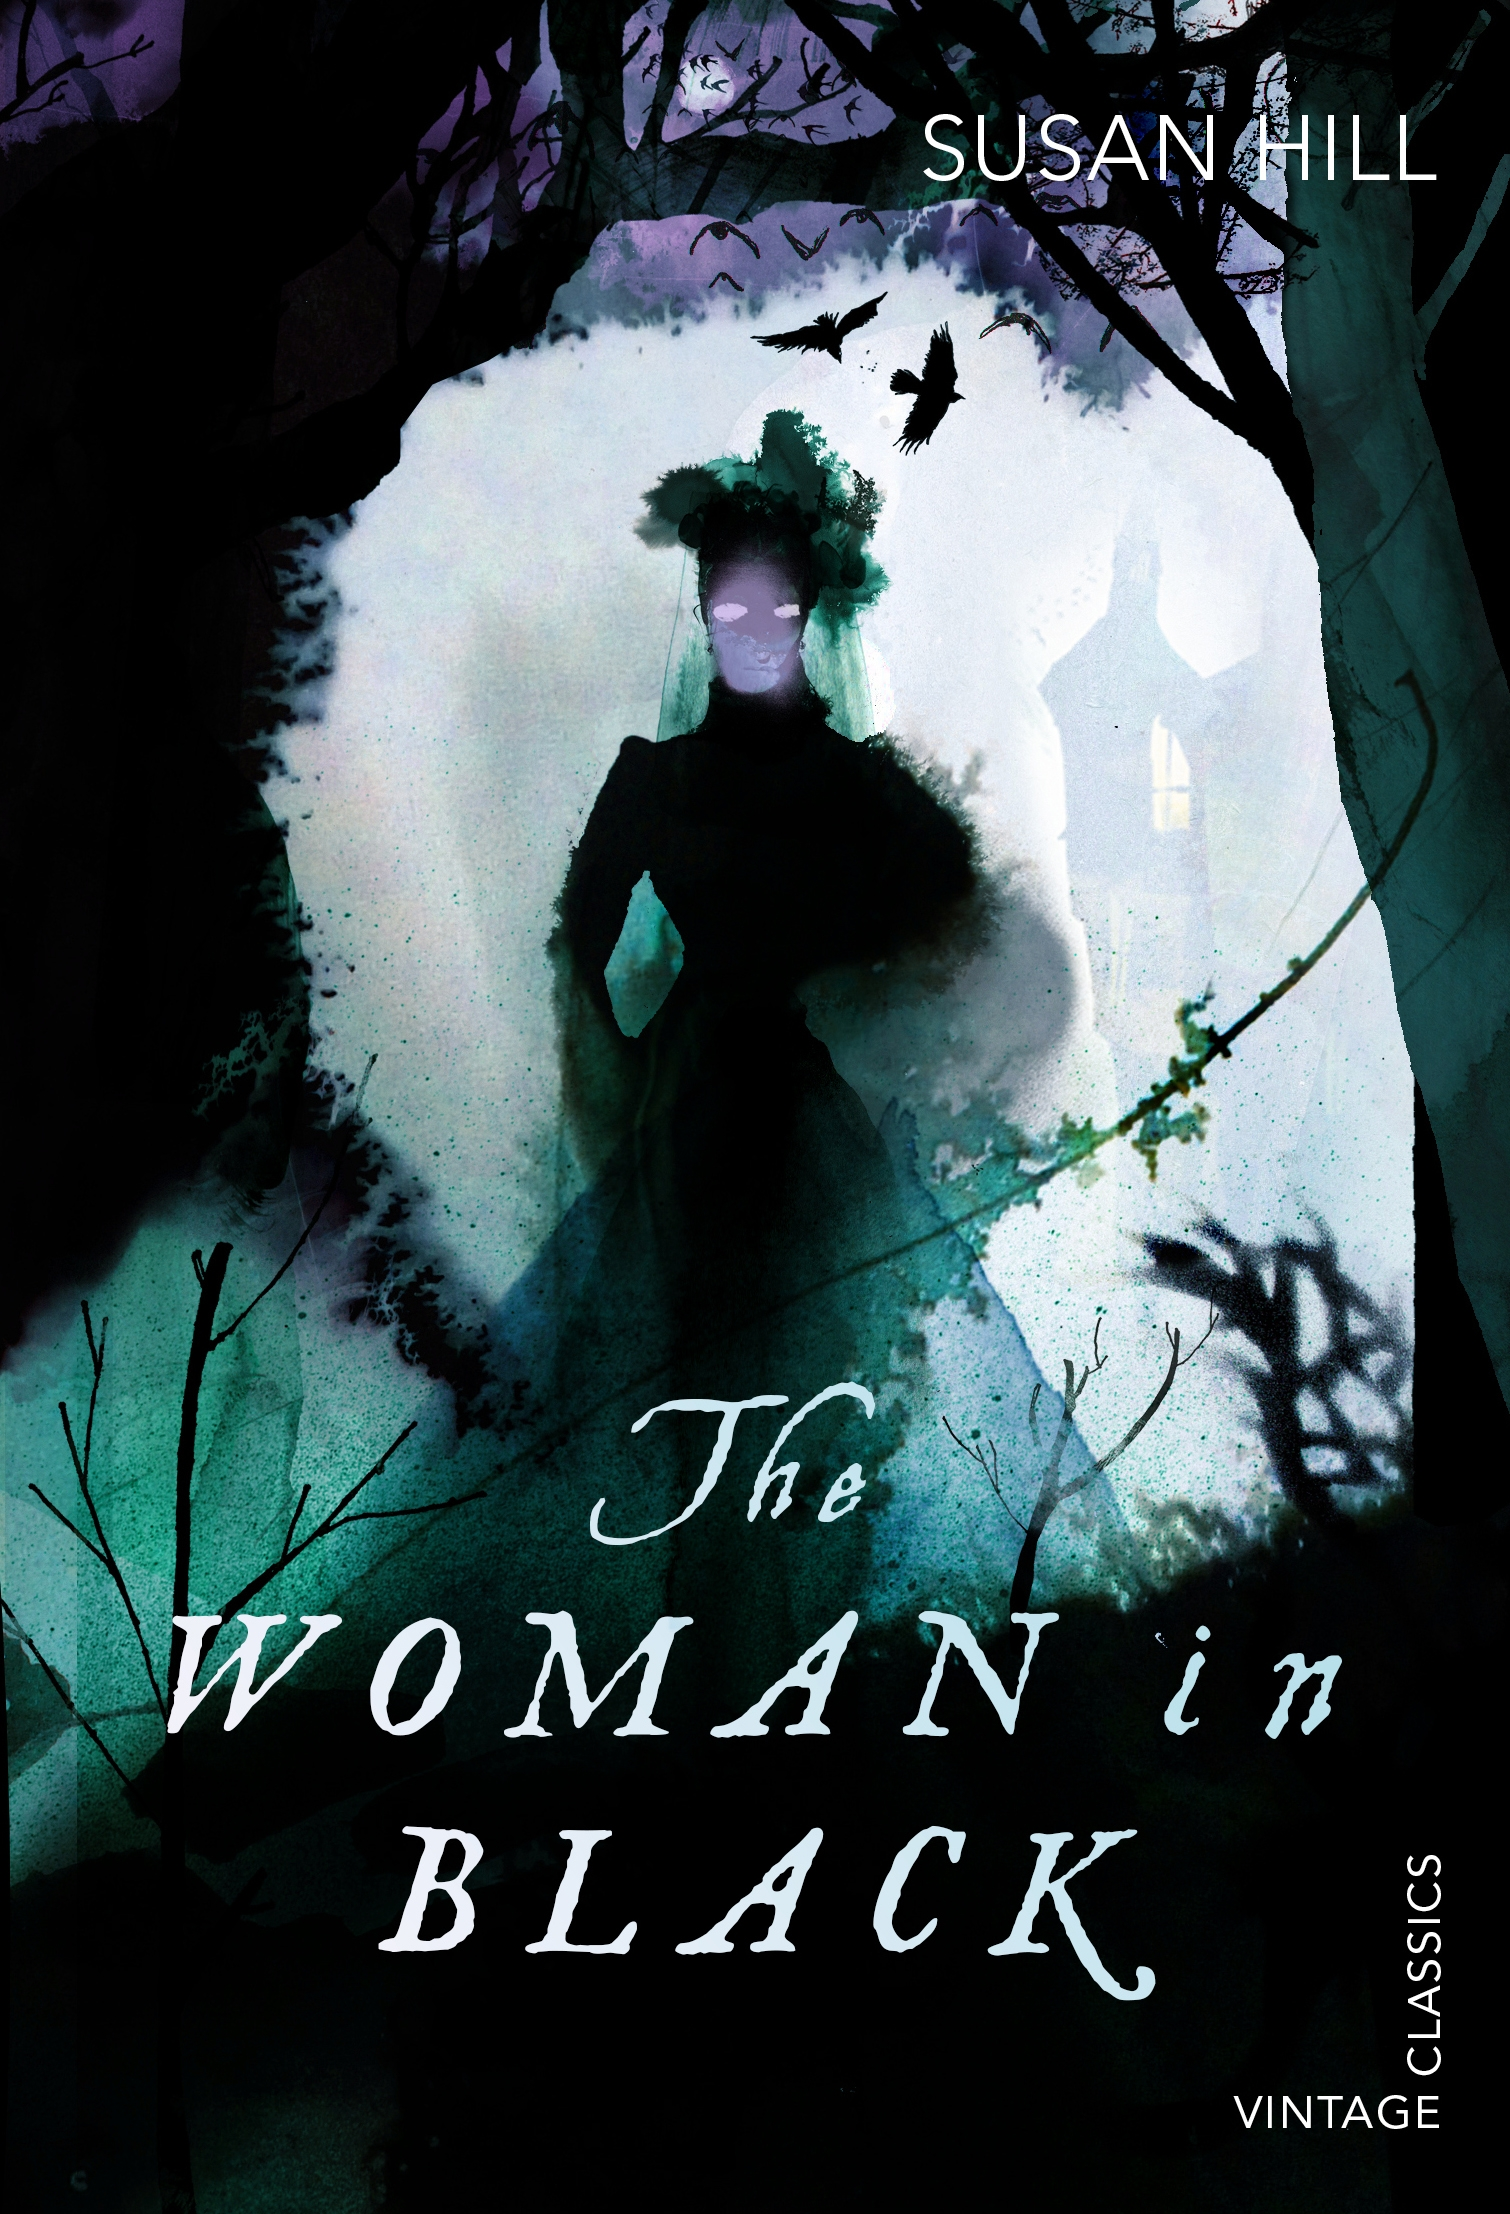 Book With Black Cover ~ The woman in black by susan hill penguin books new zealand